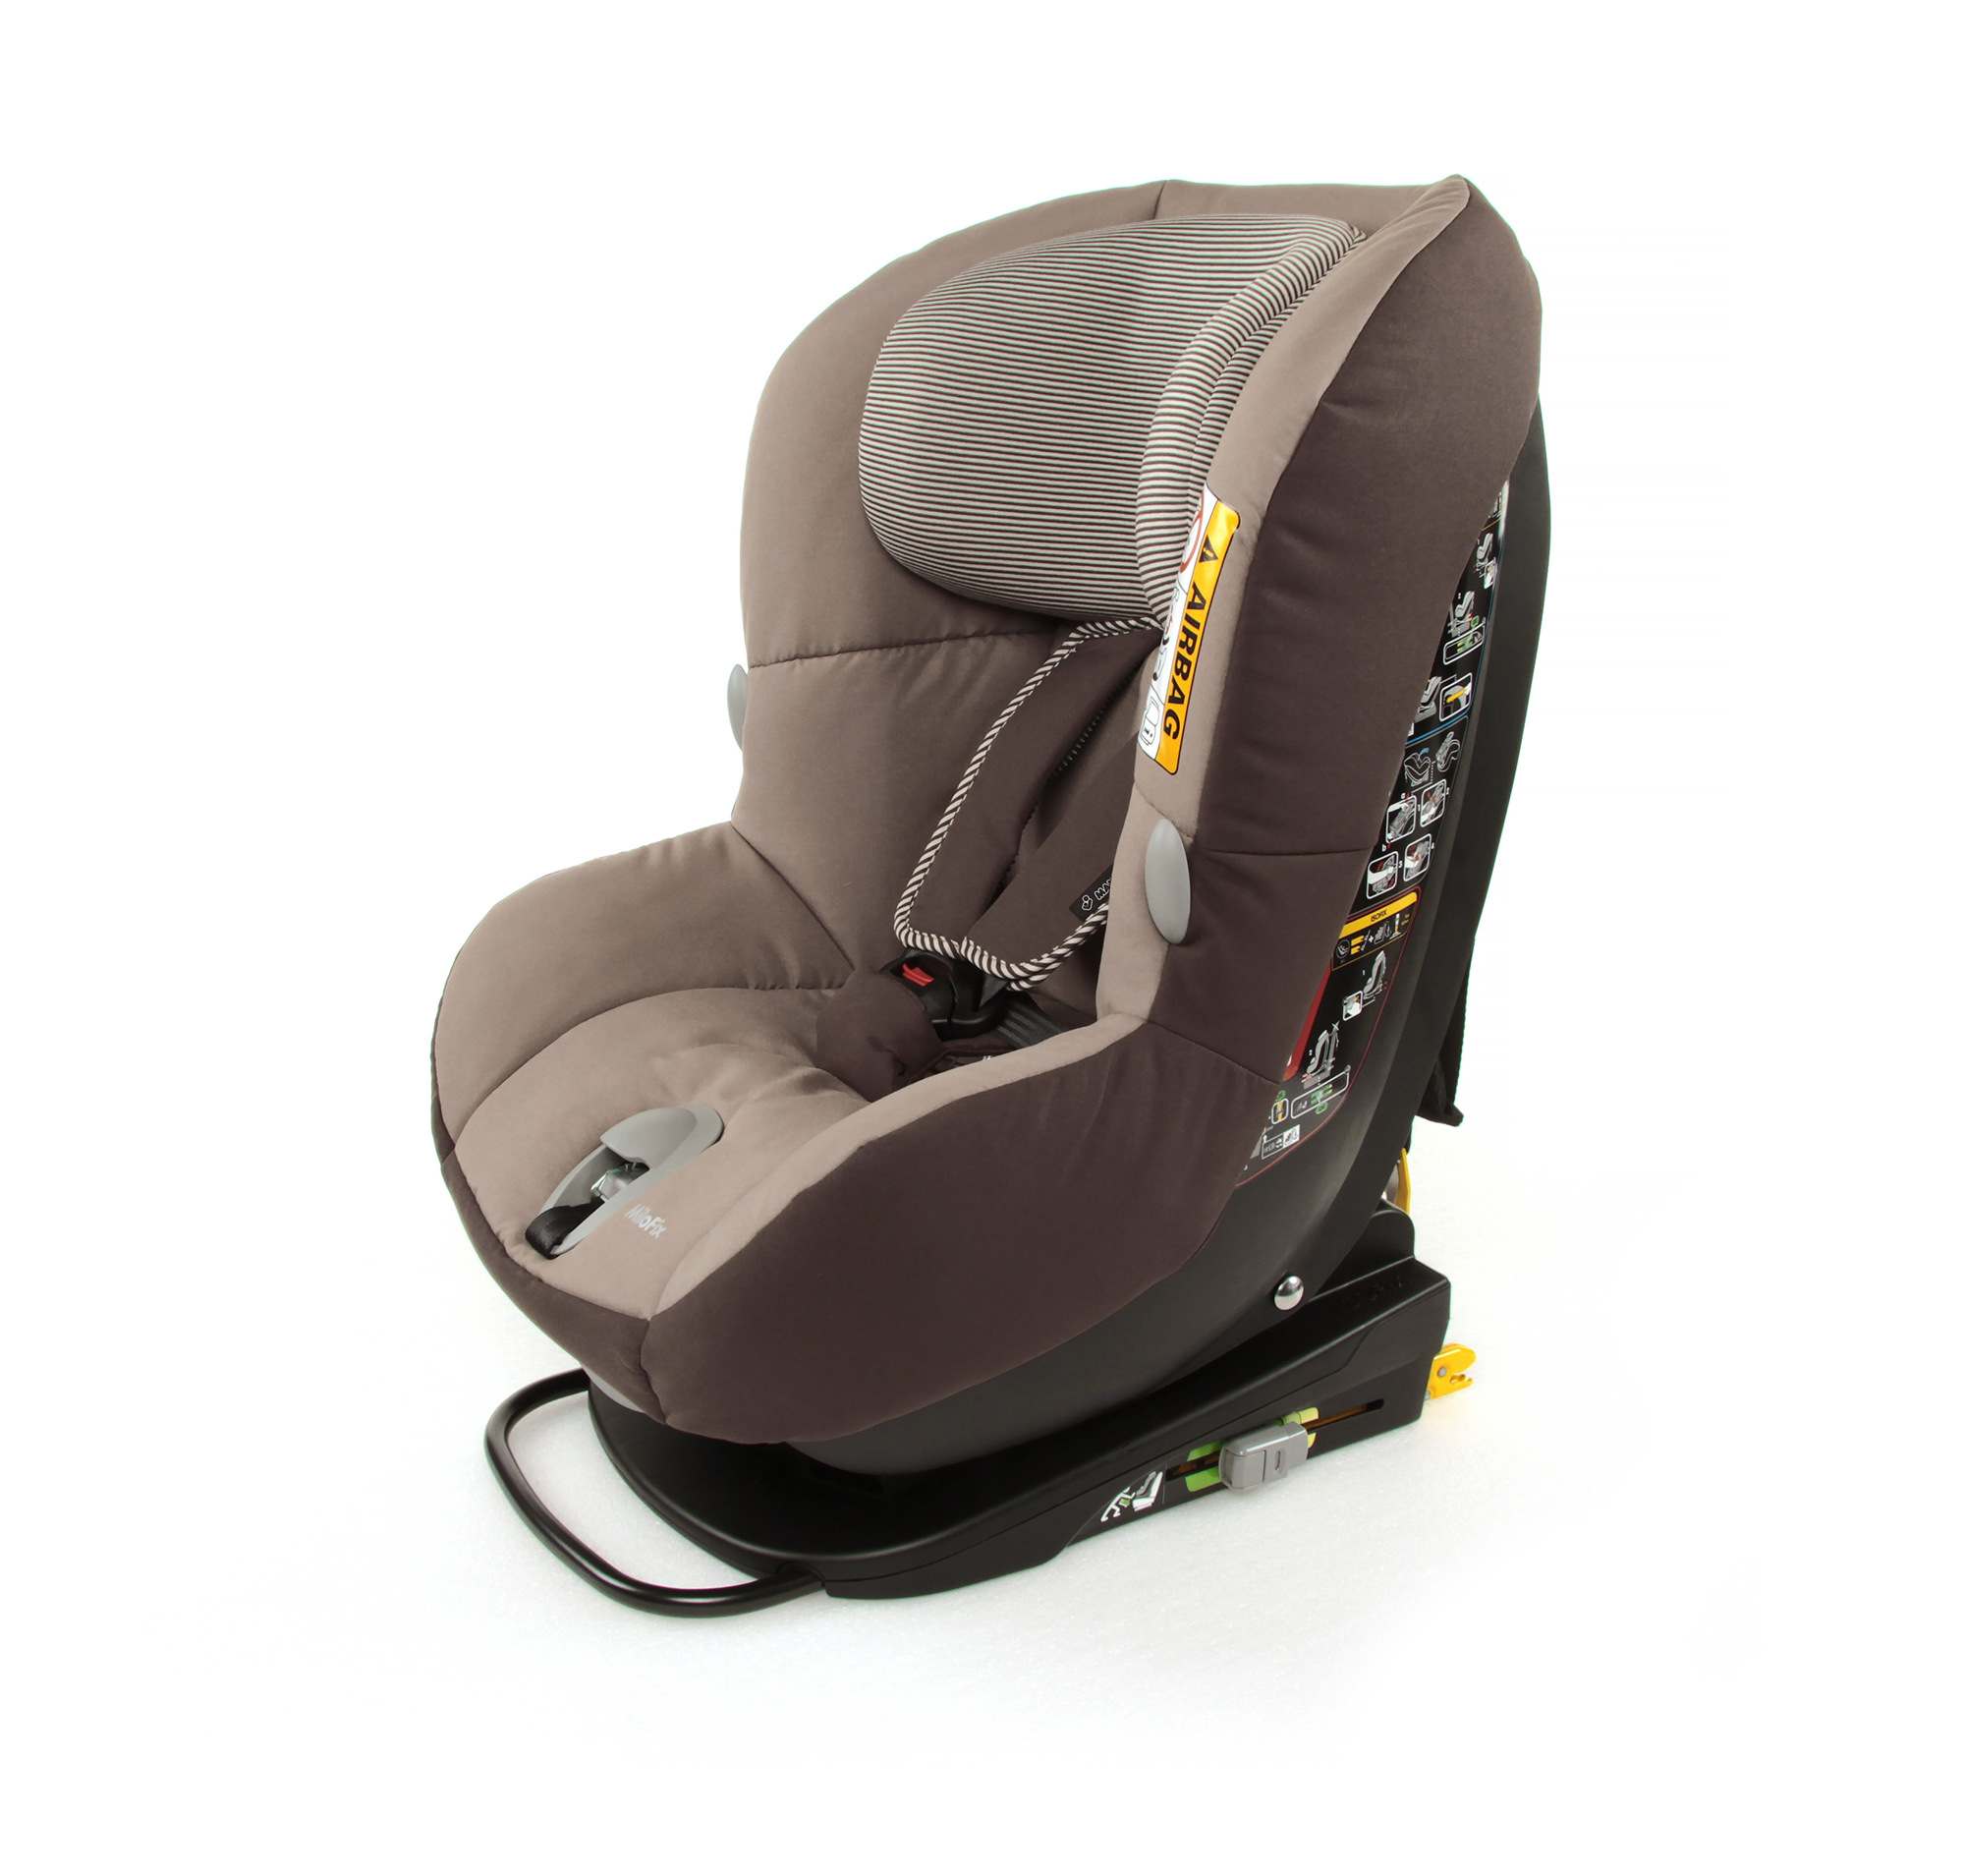 maxi cosi child car seat milofix 2017 earth brown buy at kidsroom car seats isofix child. Black Bedroom Furniture Sets. Home Design Ideas